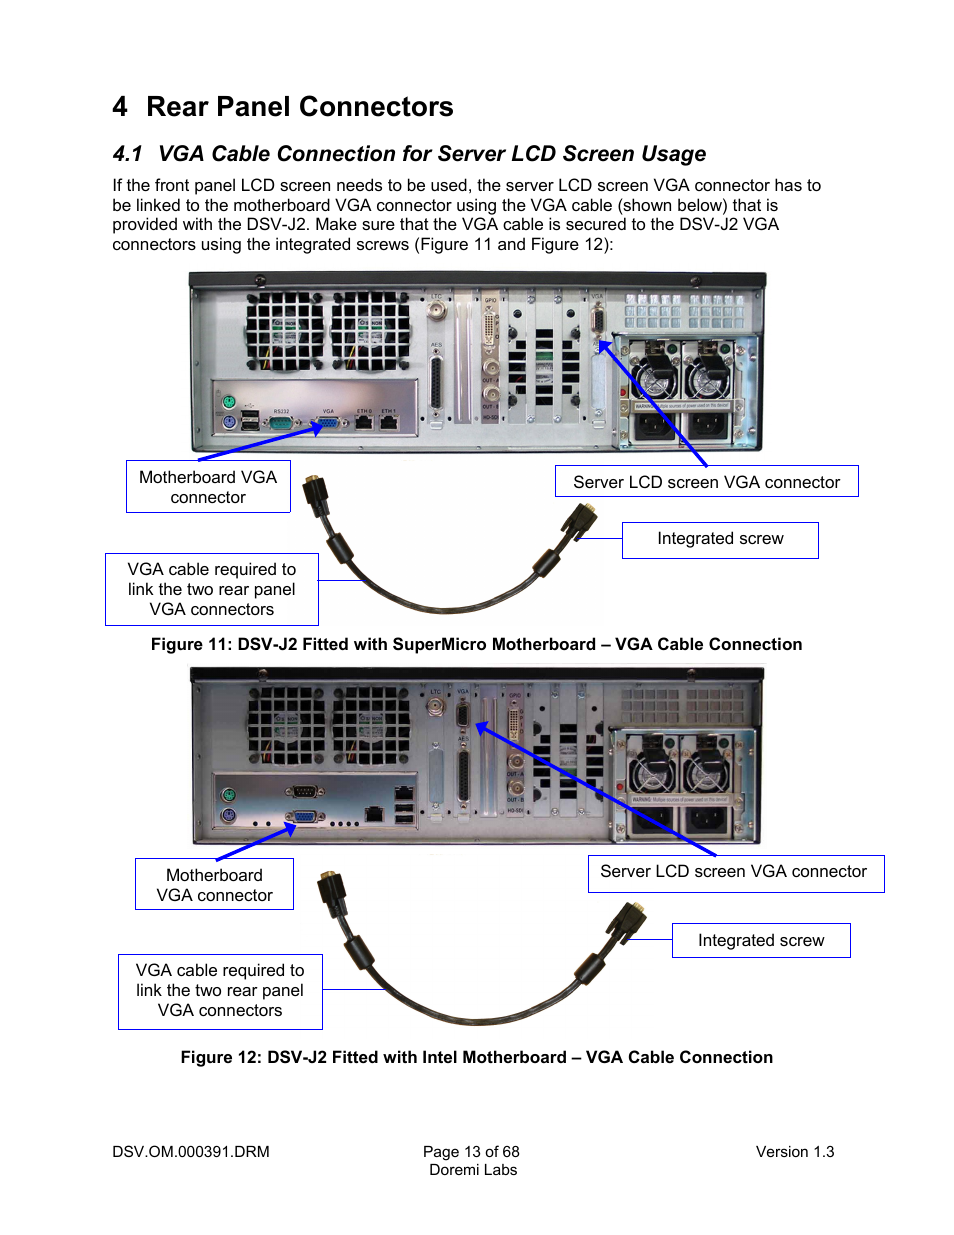 4 Rear Panel Connectors 1 Vga Cable Connection For Server Lcd Wiring Screen Usage Doremi Dsv J2 User Manual Page 13 68